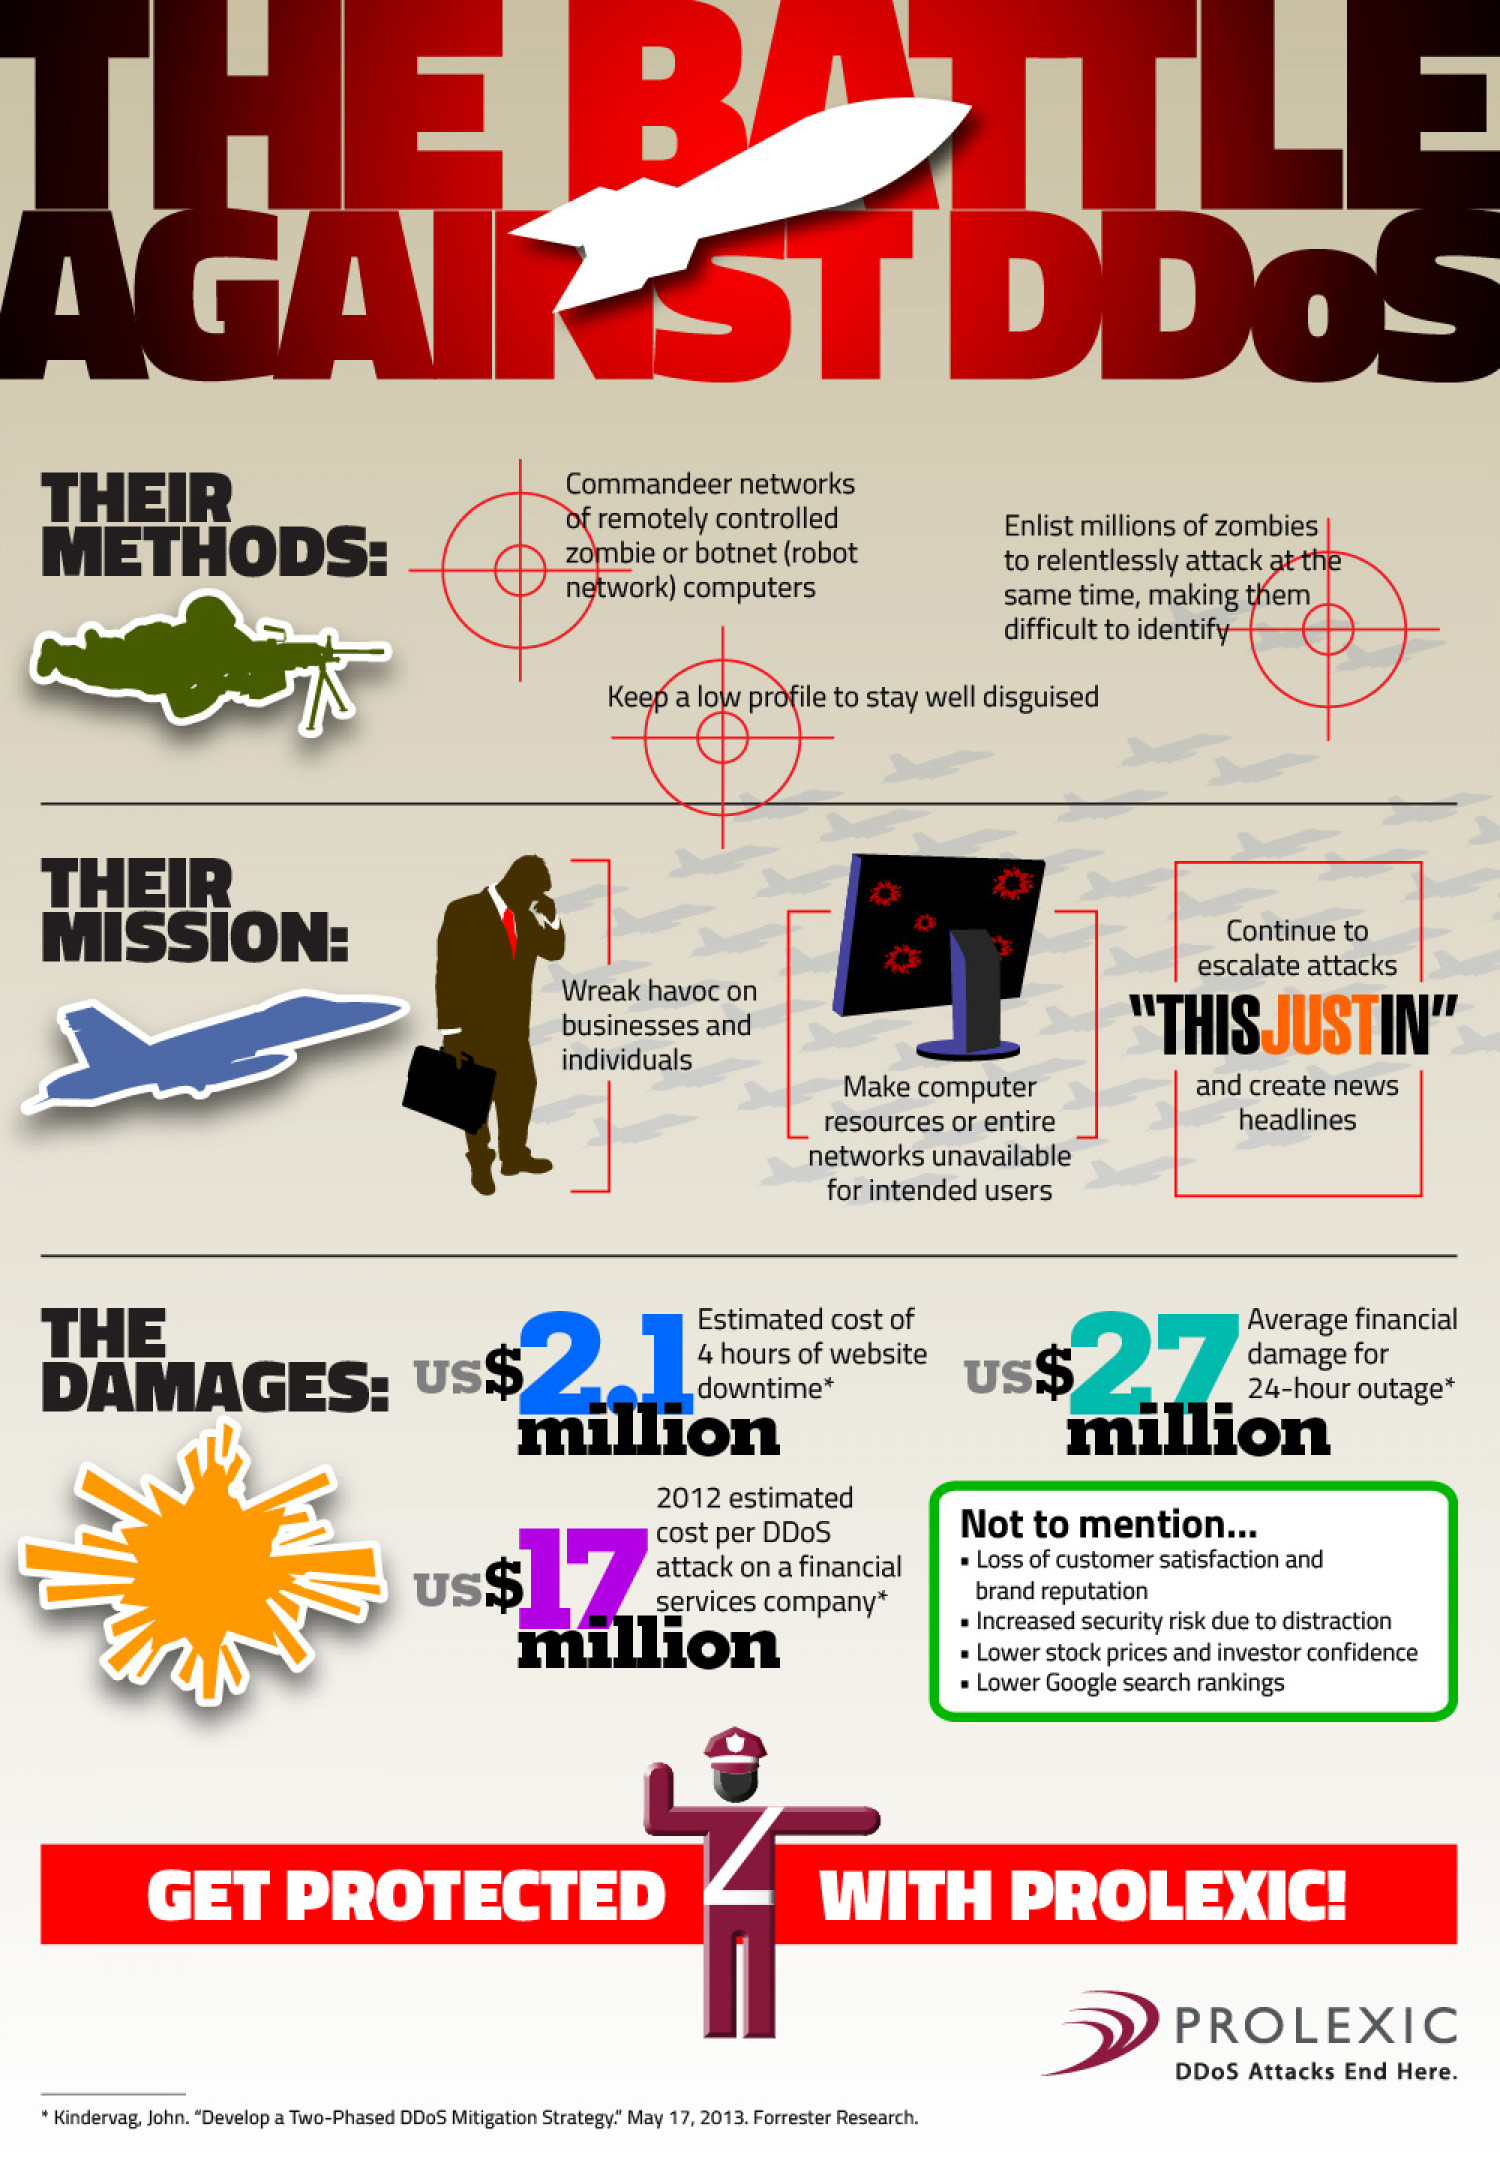 The Battle against DDoS: Attackers' Methods, Mission and Damages Infographic